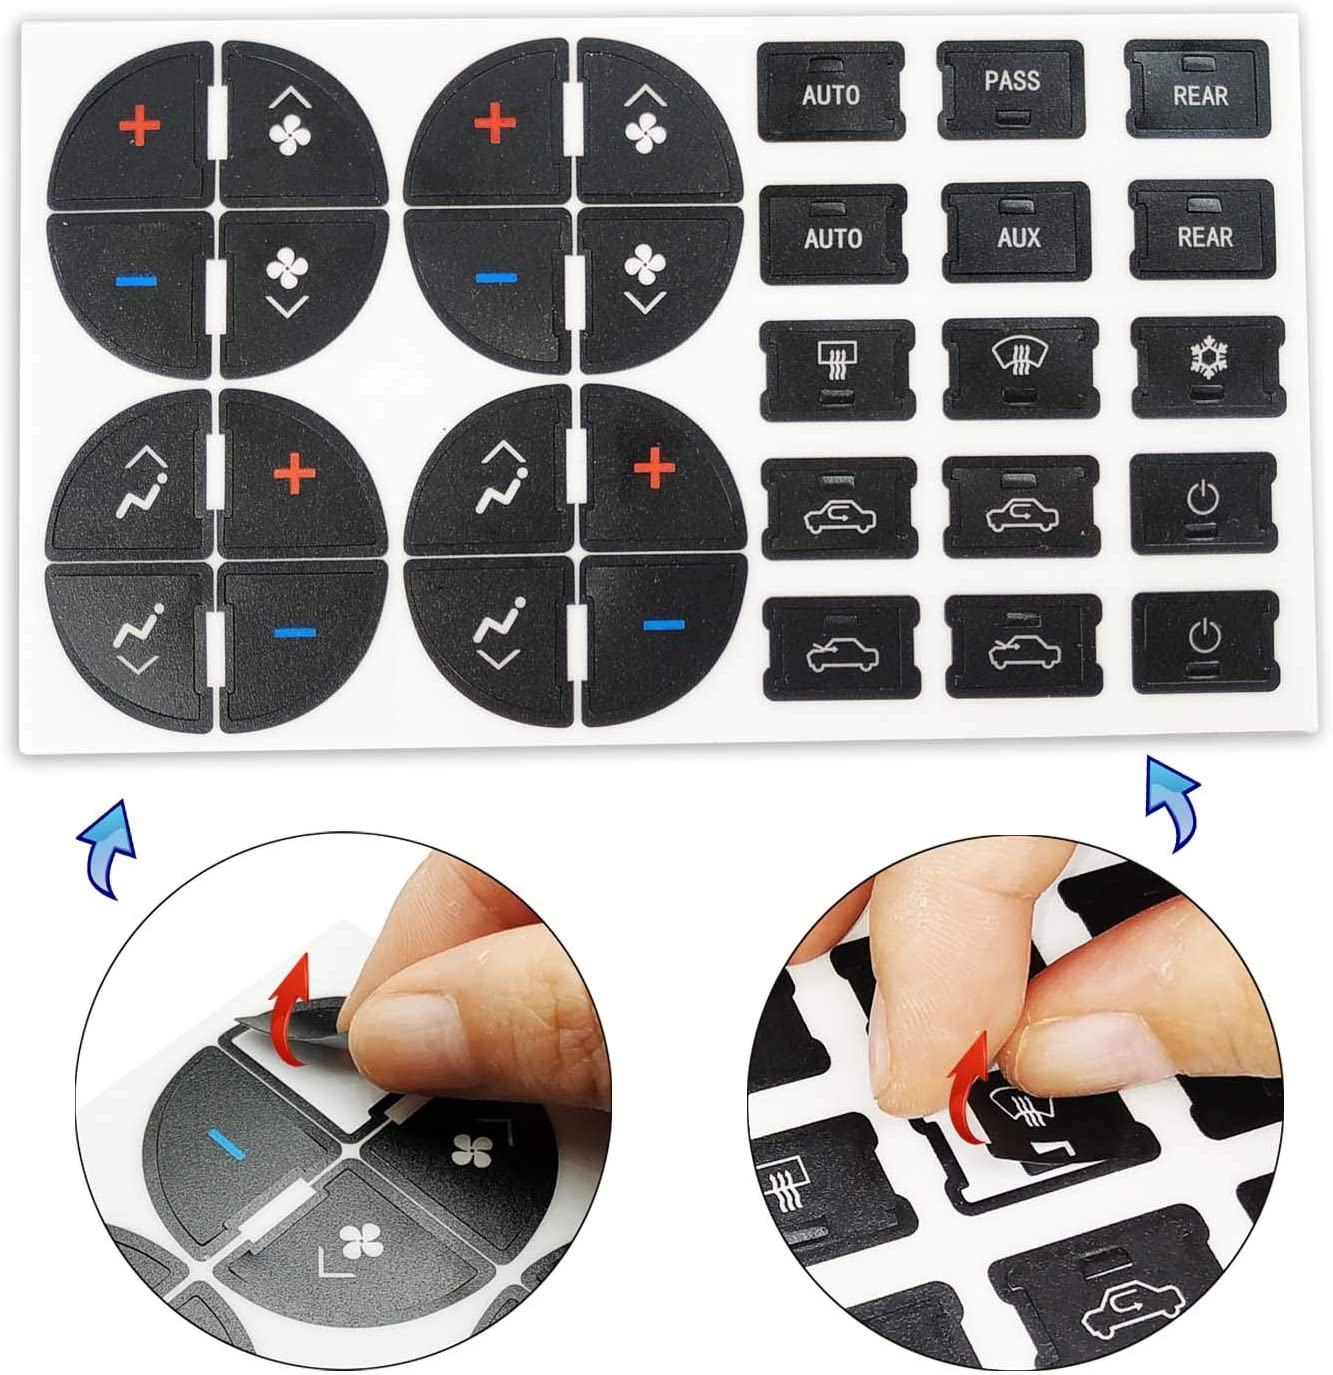 Xilang AC Dash Button Repair Kit GMC Sierra Silverado,Traverse Upgraded A//C Control Replacement Plastic Stickers to fix Worn Ruined Faded Buttons,fits Chevy Tahoe Suburban Acadia,Buick Anclave